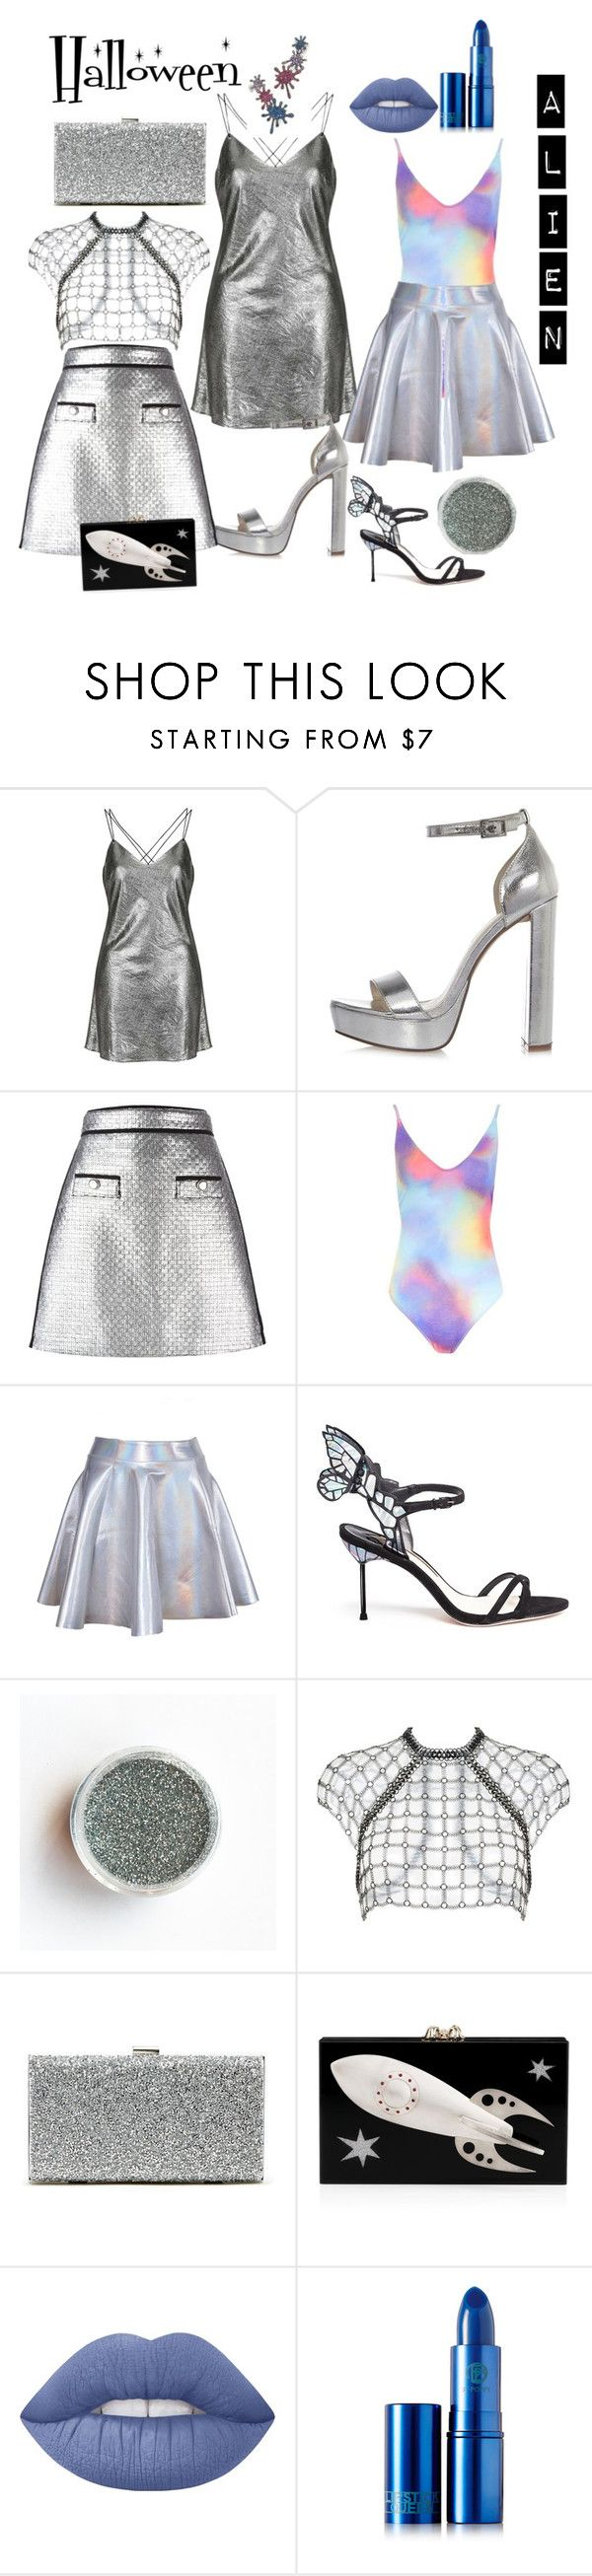 Chic Alien by aftermidnight-style on Polyvore featuring Topshop, Fannie Schiavoni, MSGM, River Island, Sophia Webster, Sole Society, Charlotte Olympia, Joanna Laura Constantine, Lipstick Queen and Lime Crime #halloween #alien #costume #ideas #halloweencostume #women #girl #female #glitter #hologram #makeup #halloweenidea #style #fashion